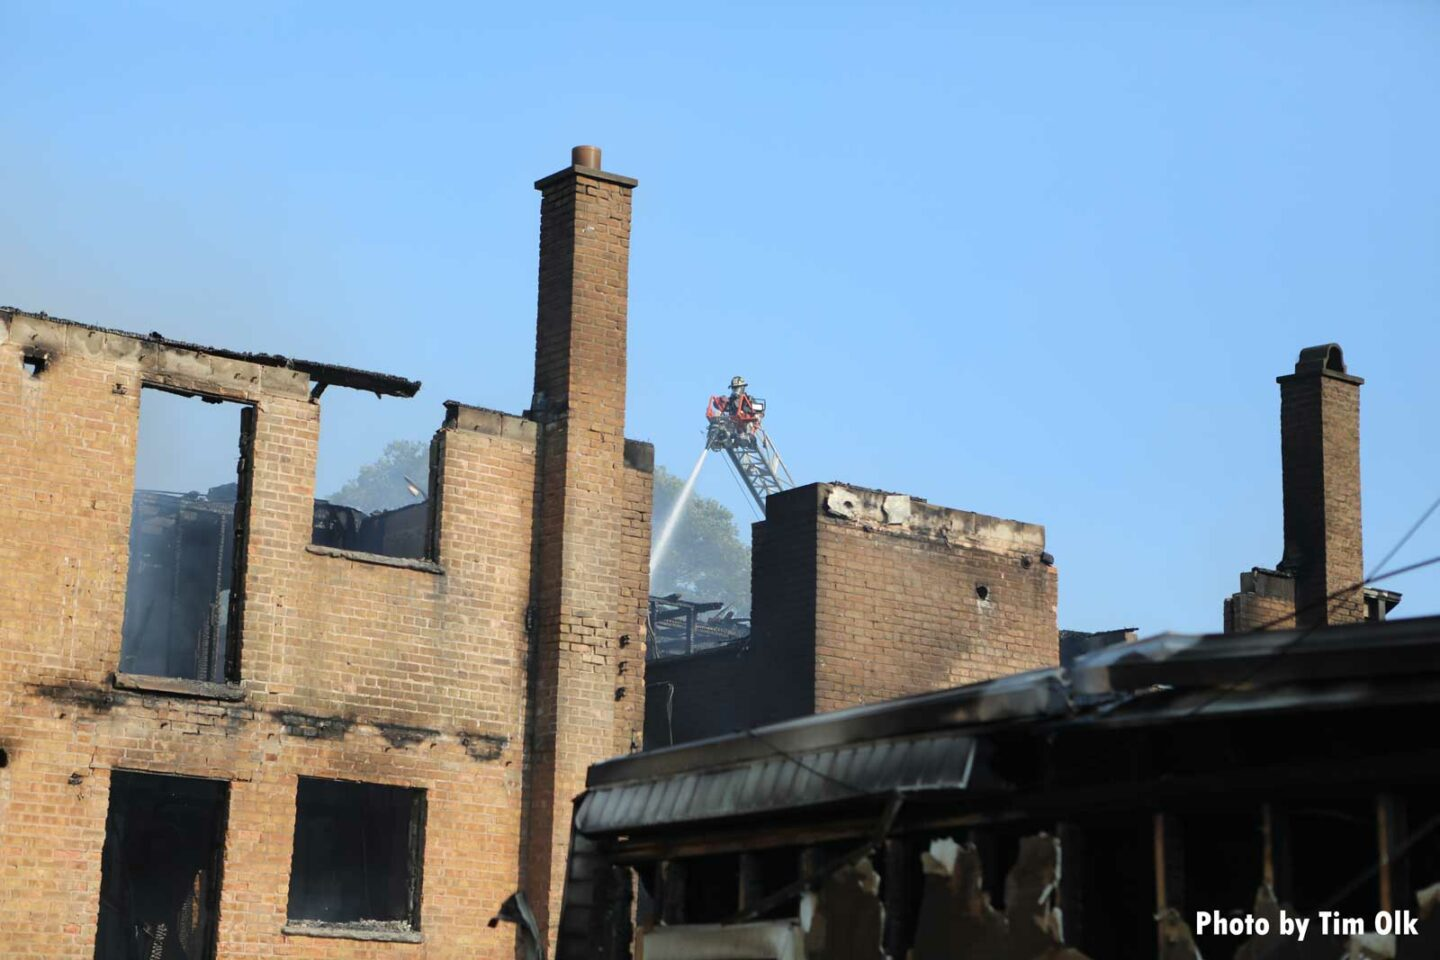 Firefighter on a ladder behind burned out buildings